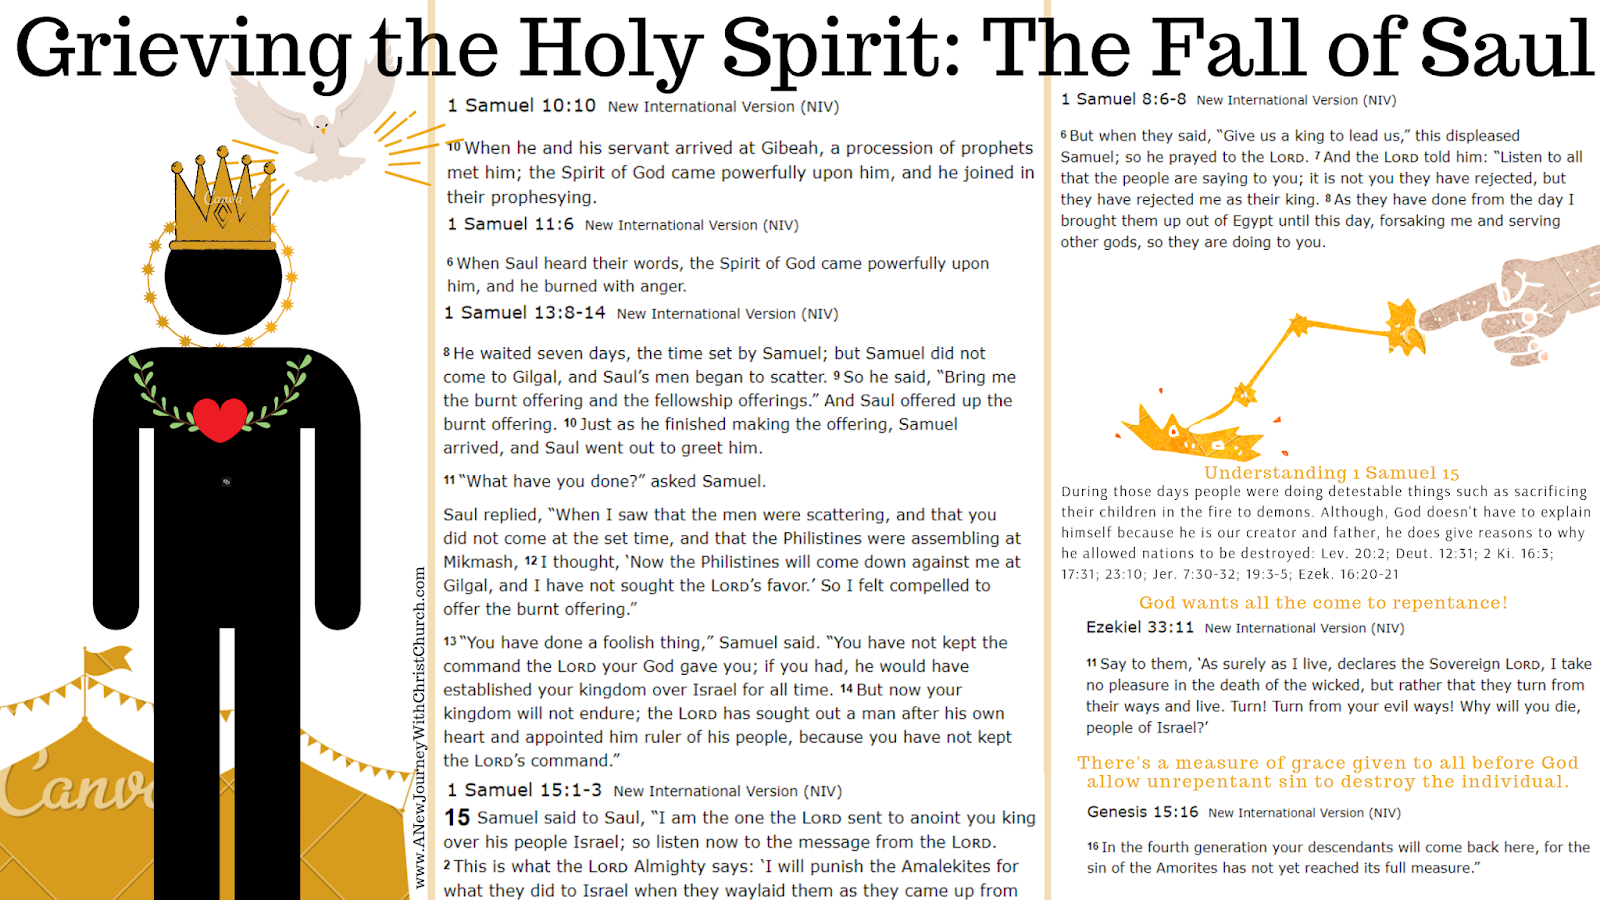 How did Saul grieve the Holy Spirit?